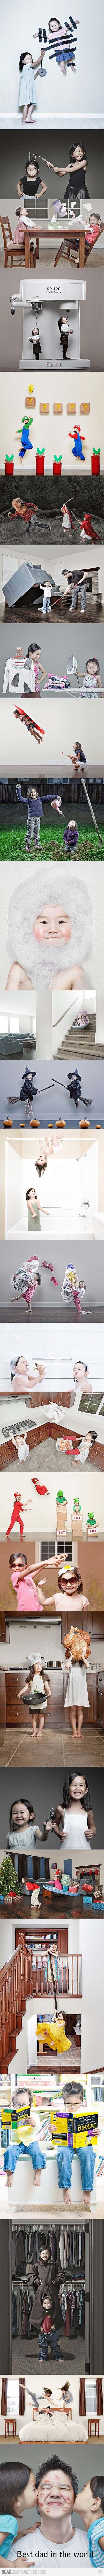 Photographer who takes really creative shots of his daughters.